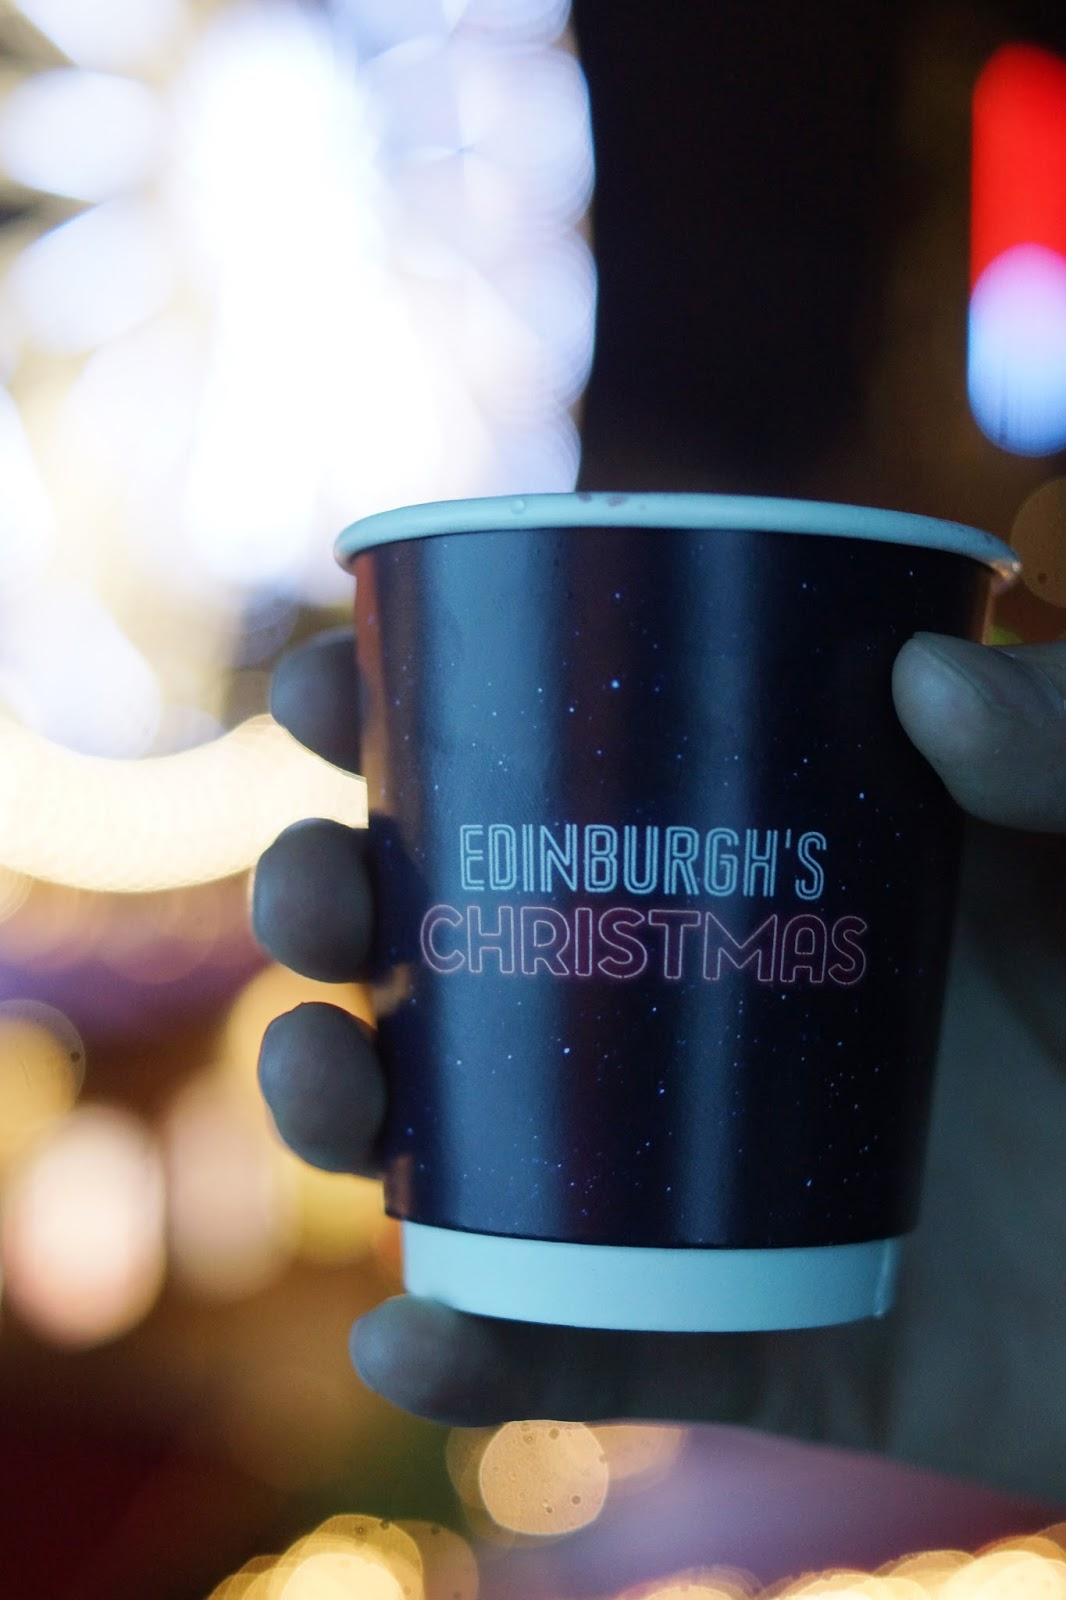 Hello Freckles Edinburghs Christmas Travel Guide Mulled Wine Market Hotel Review